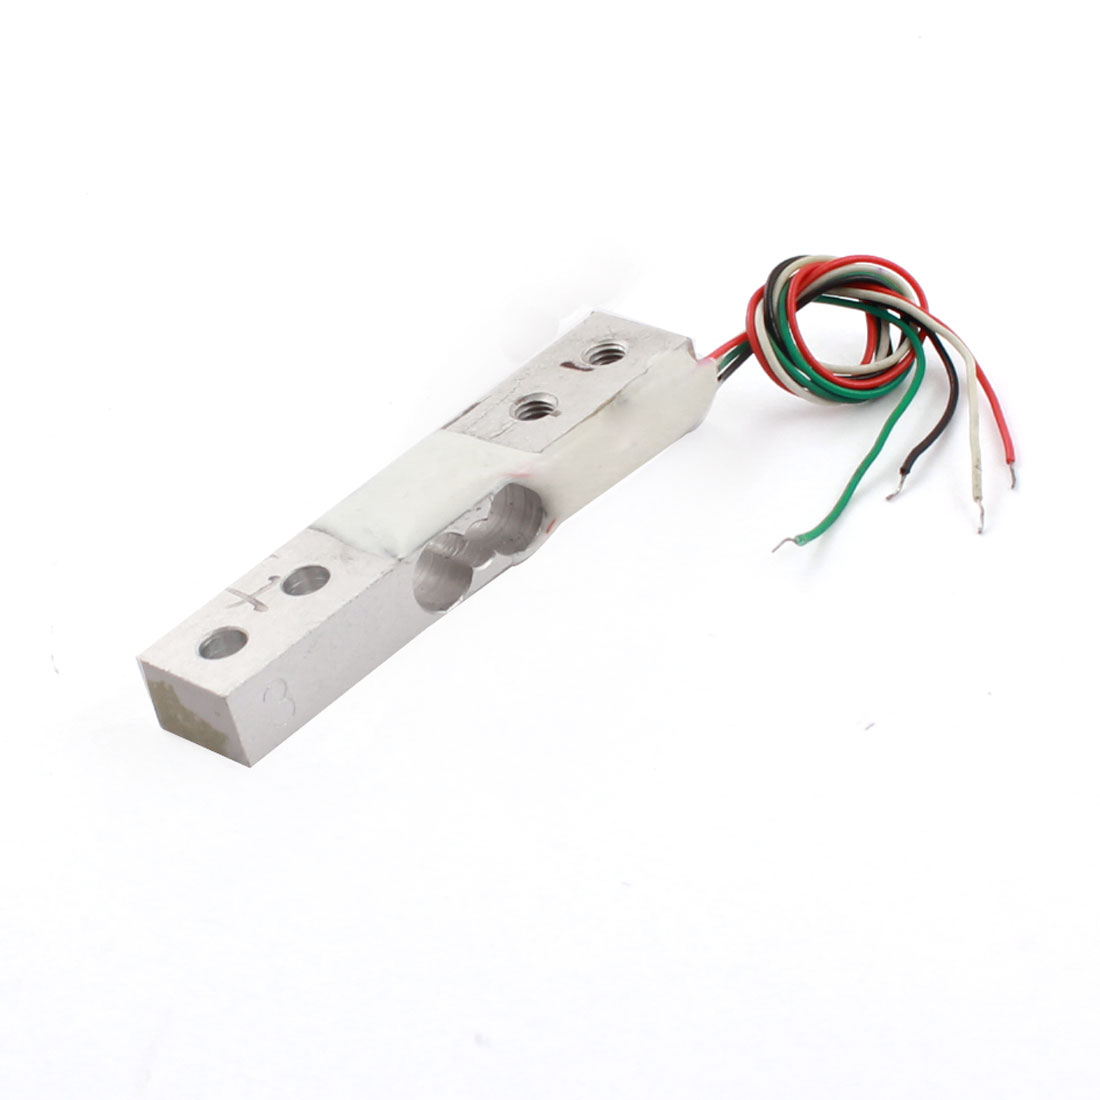 300g 0.66lb 4-Wired Rectangle Aluminium Alloy Single Ended Platform Scale Micro Load Cell Weighting Pressure Sensor